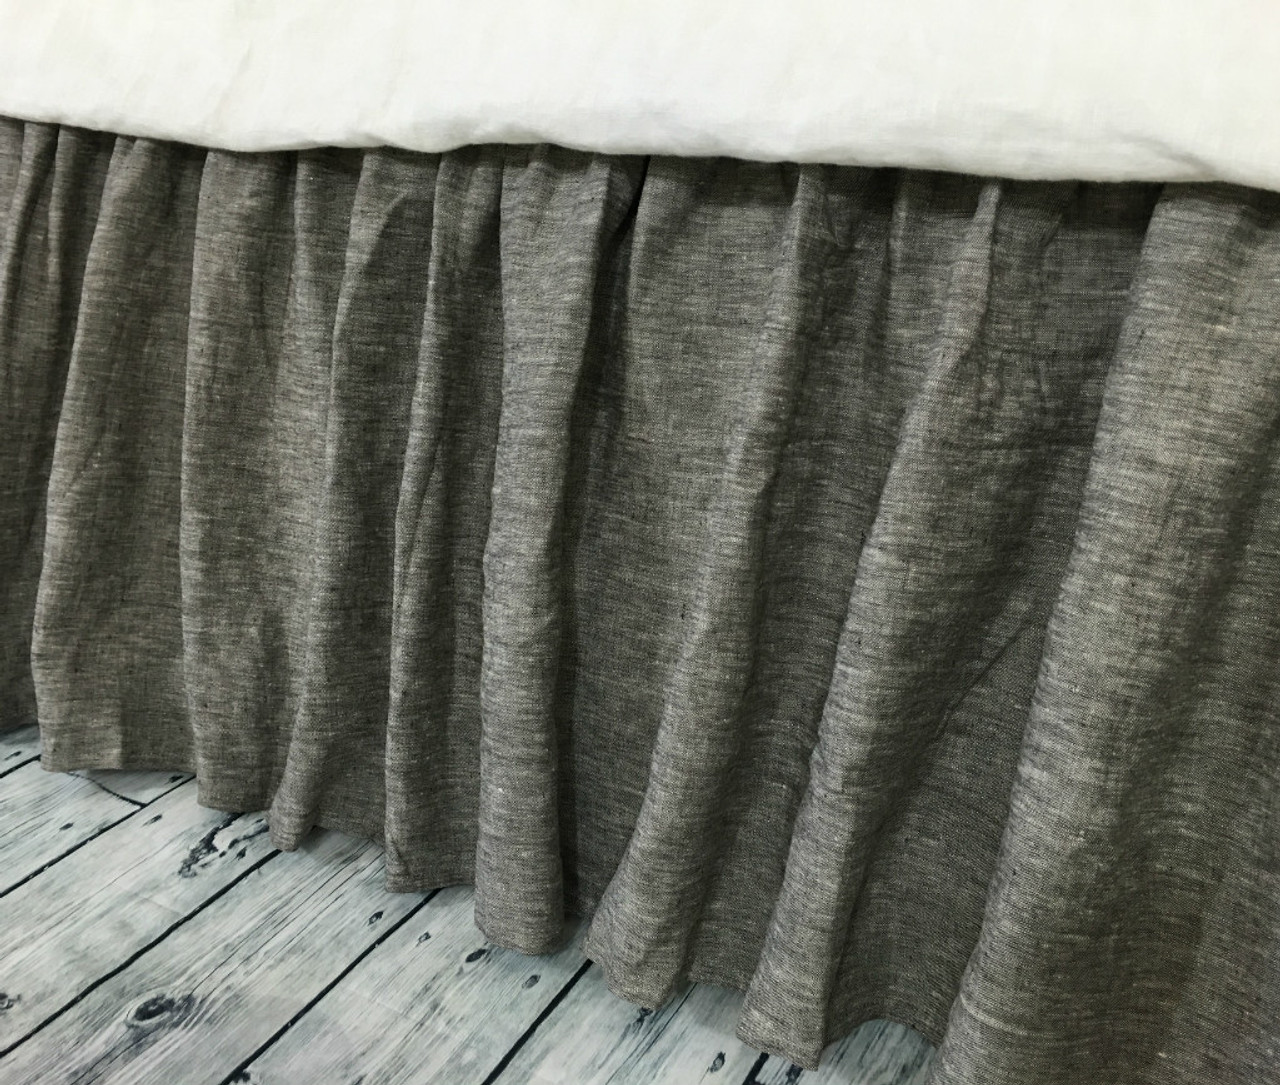 Chambray Grey Bed Skirt Gathered Bed Skirt Available In Twin Full Queen King Calif King 13 24 Drop Or Custom Length